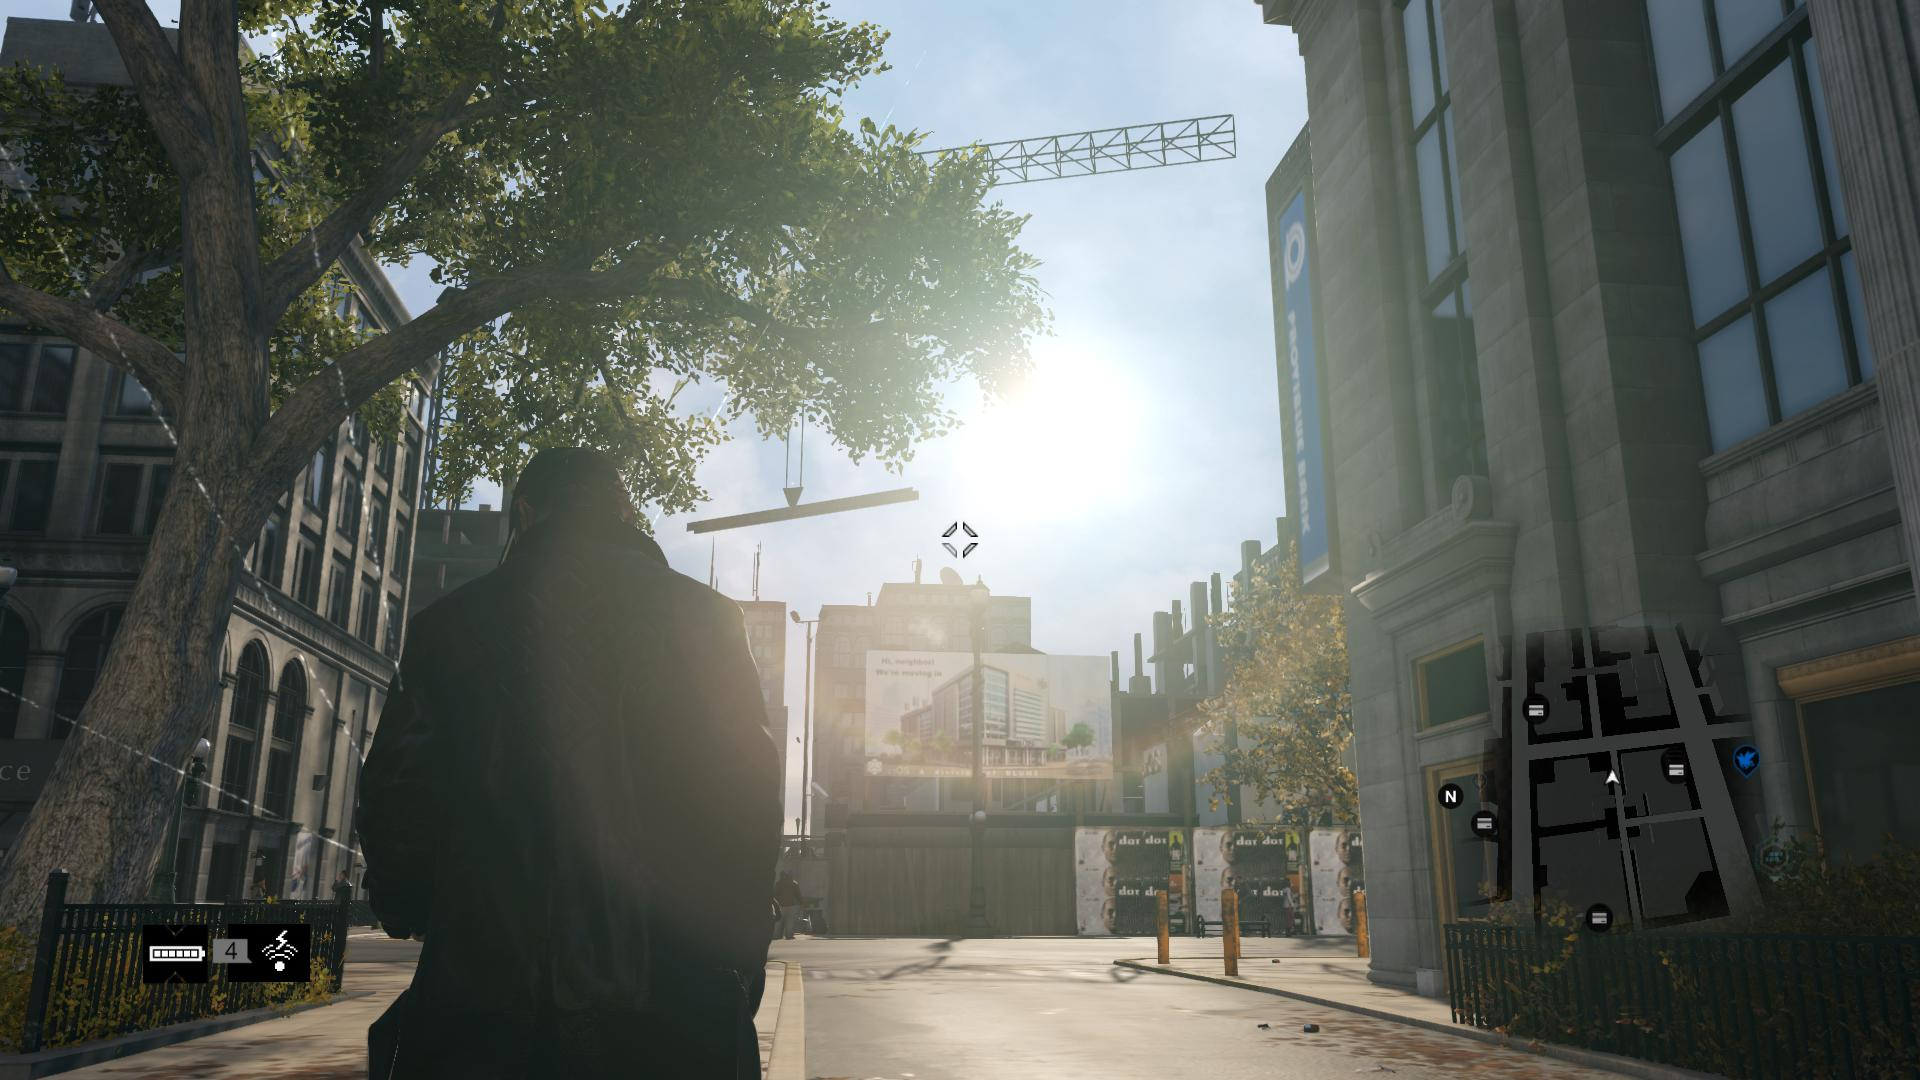 okla_blog_I_watchdogs_06.jpg